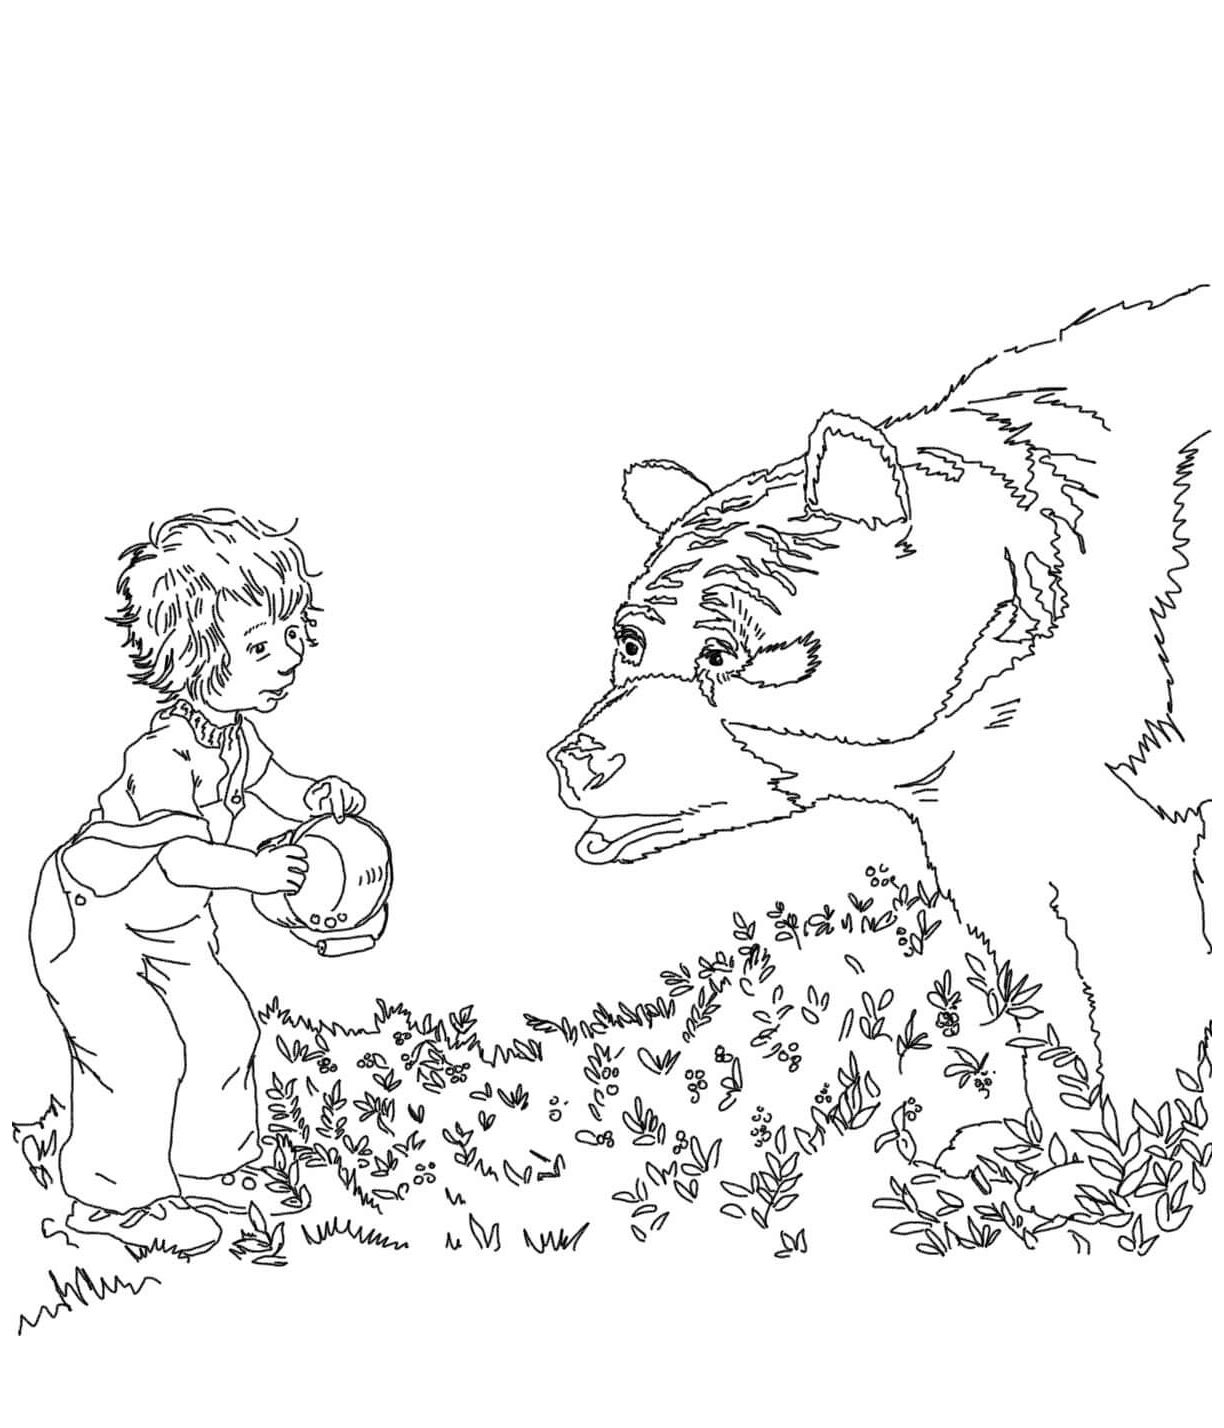 blueberries for sal coloring pages e1529842391209